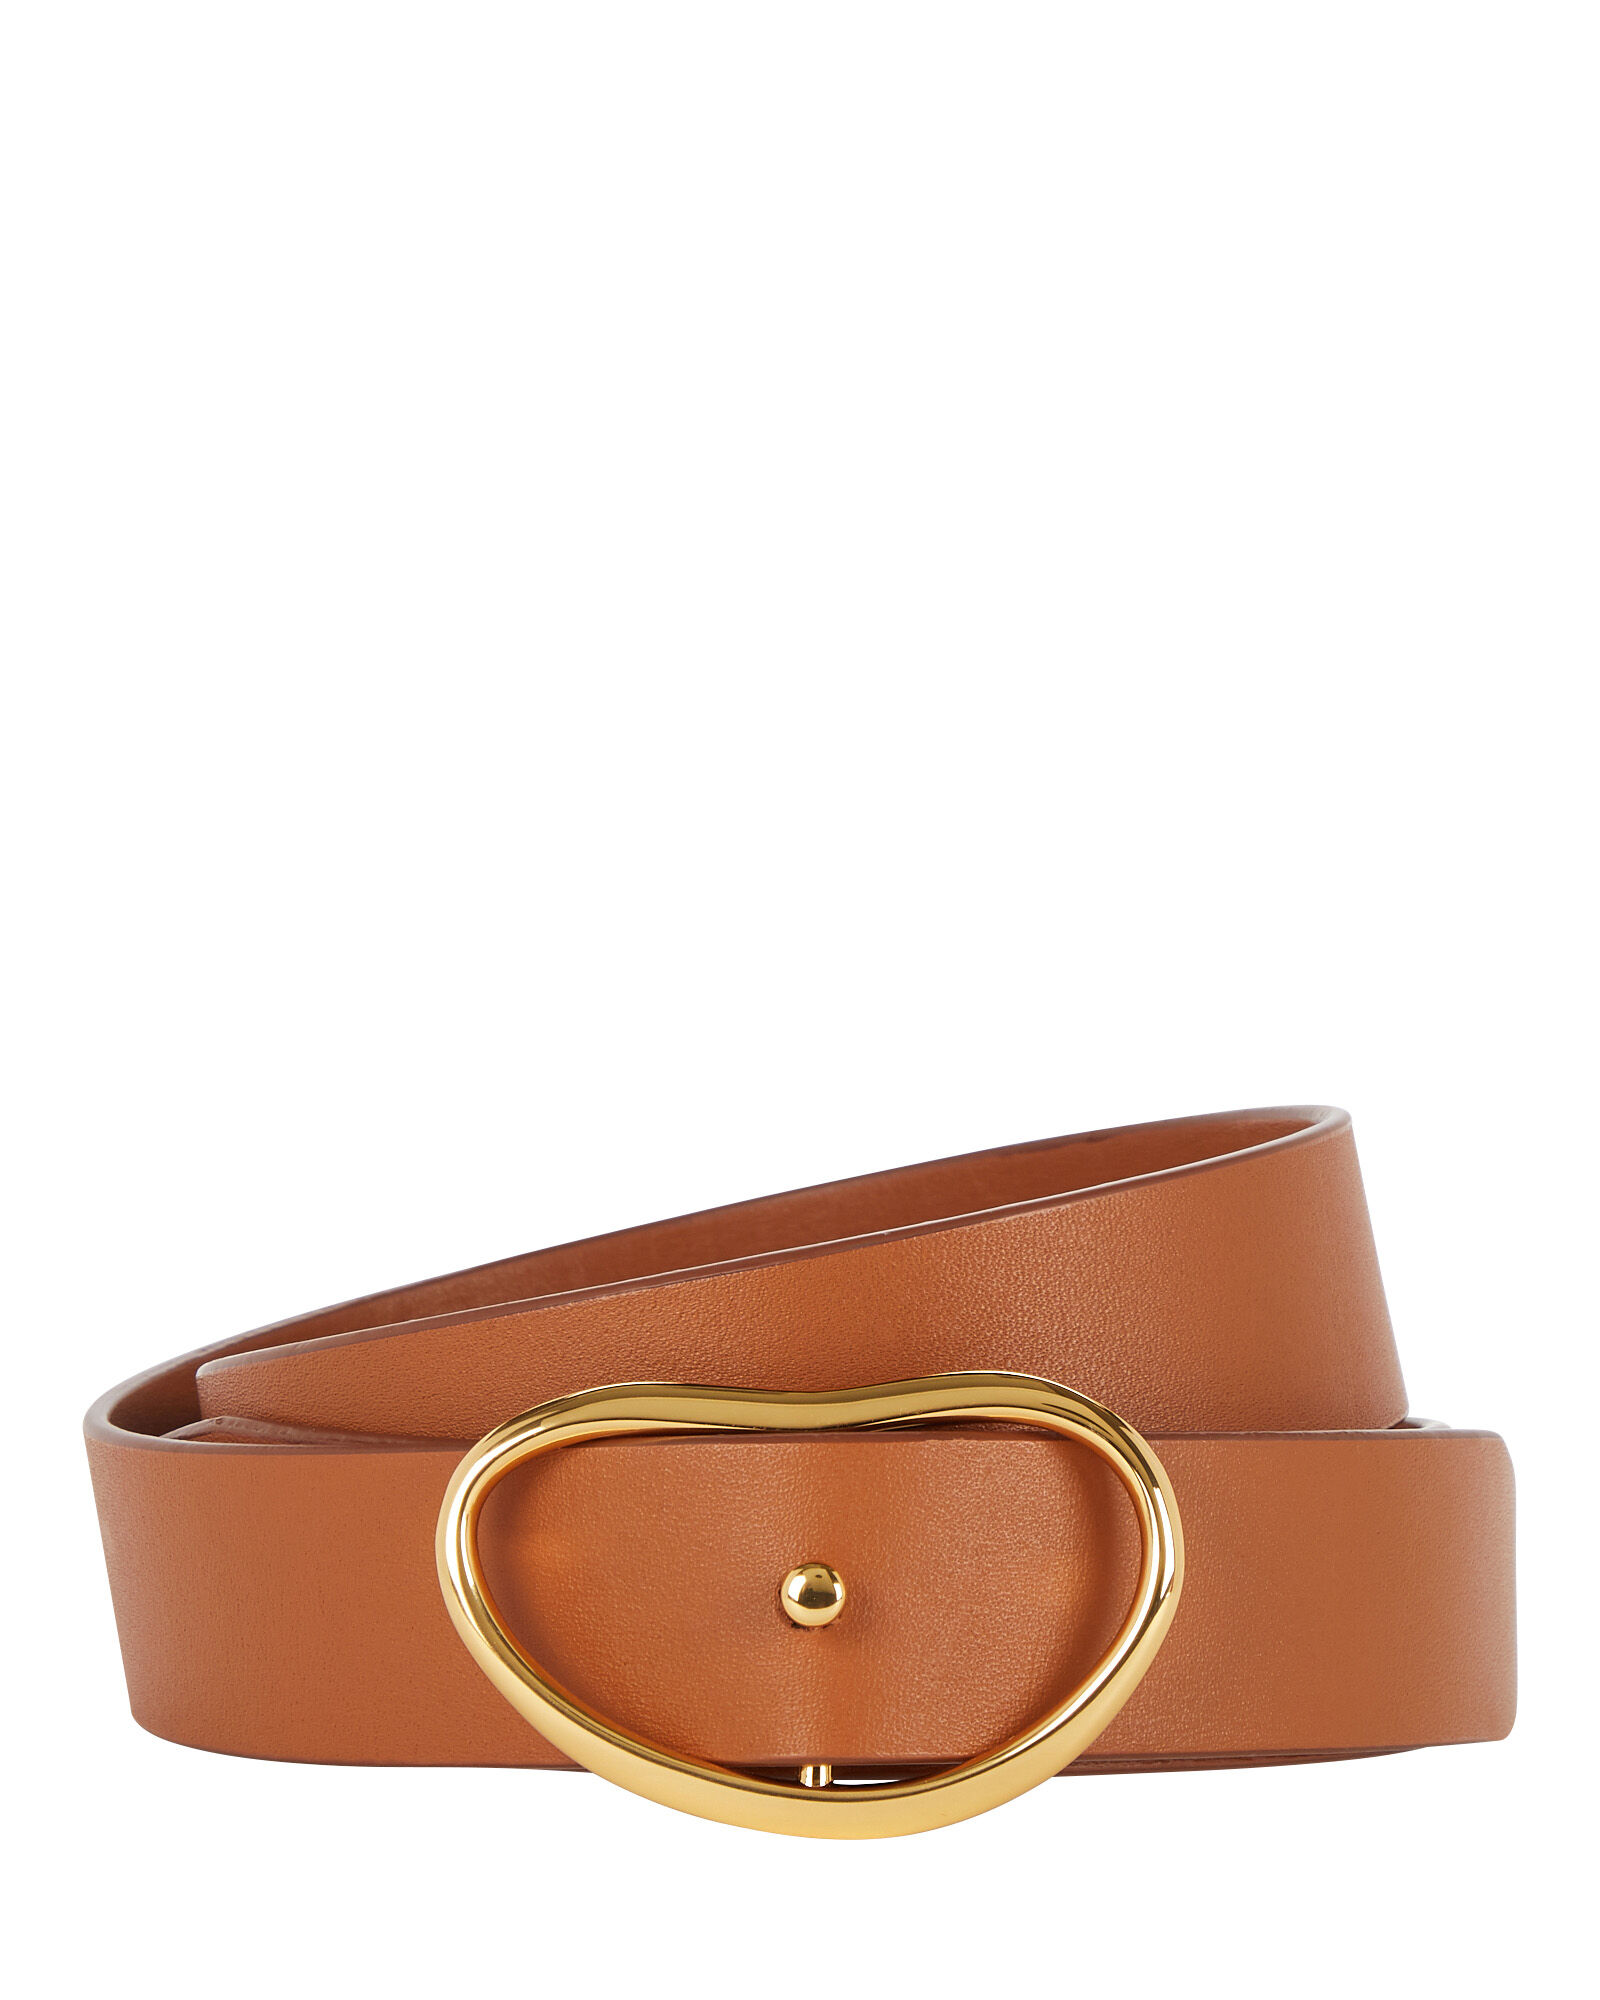 Georgia Wide Leather Belt, BEIGE, hi-res